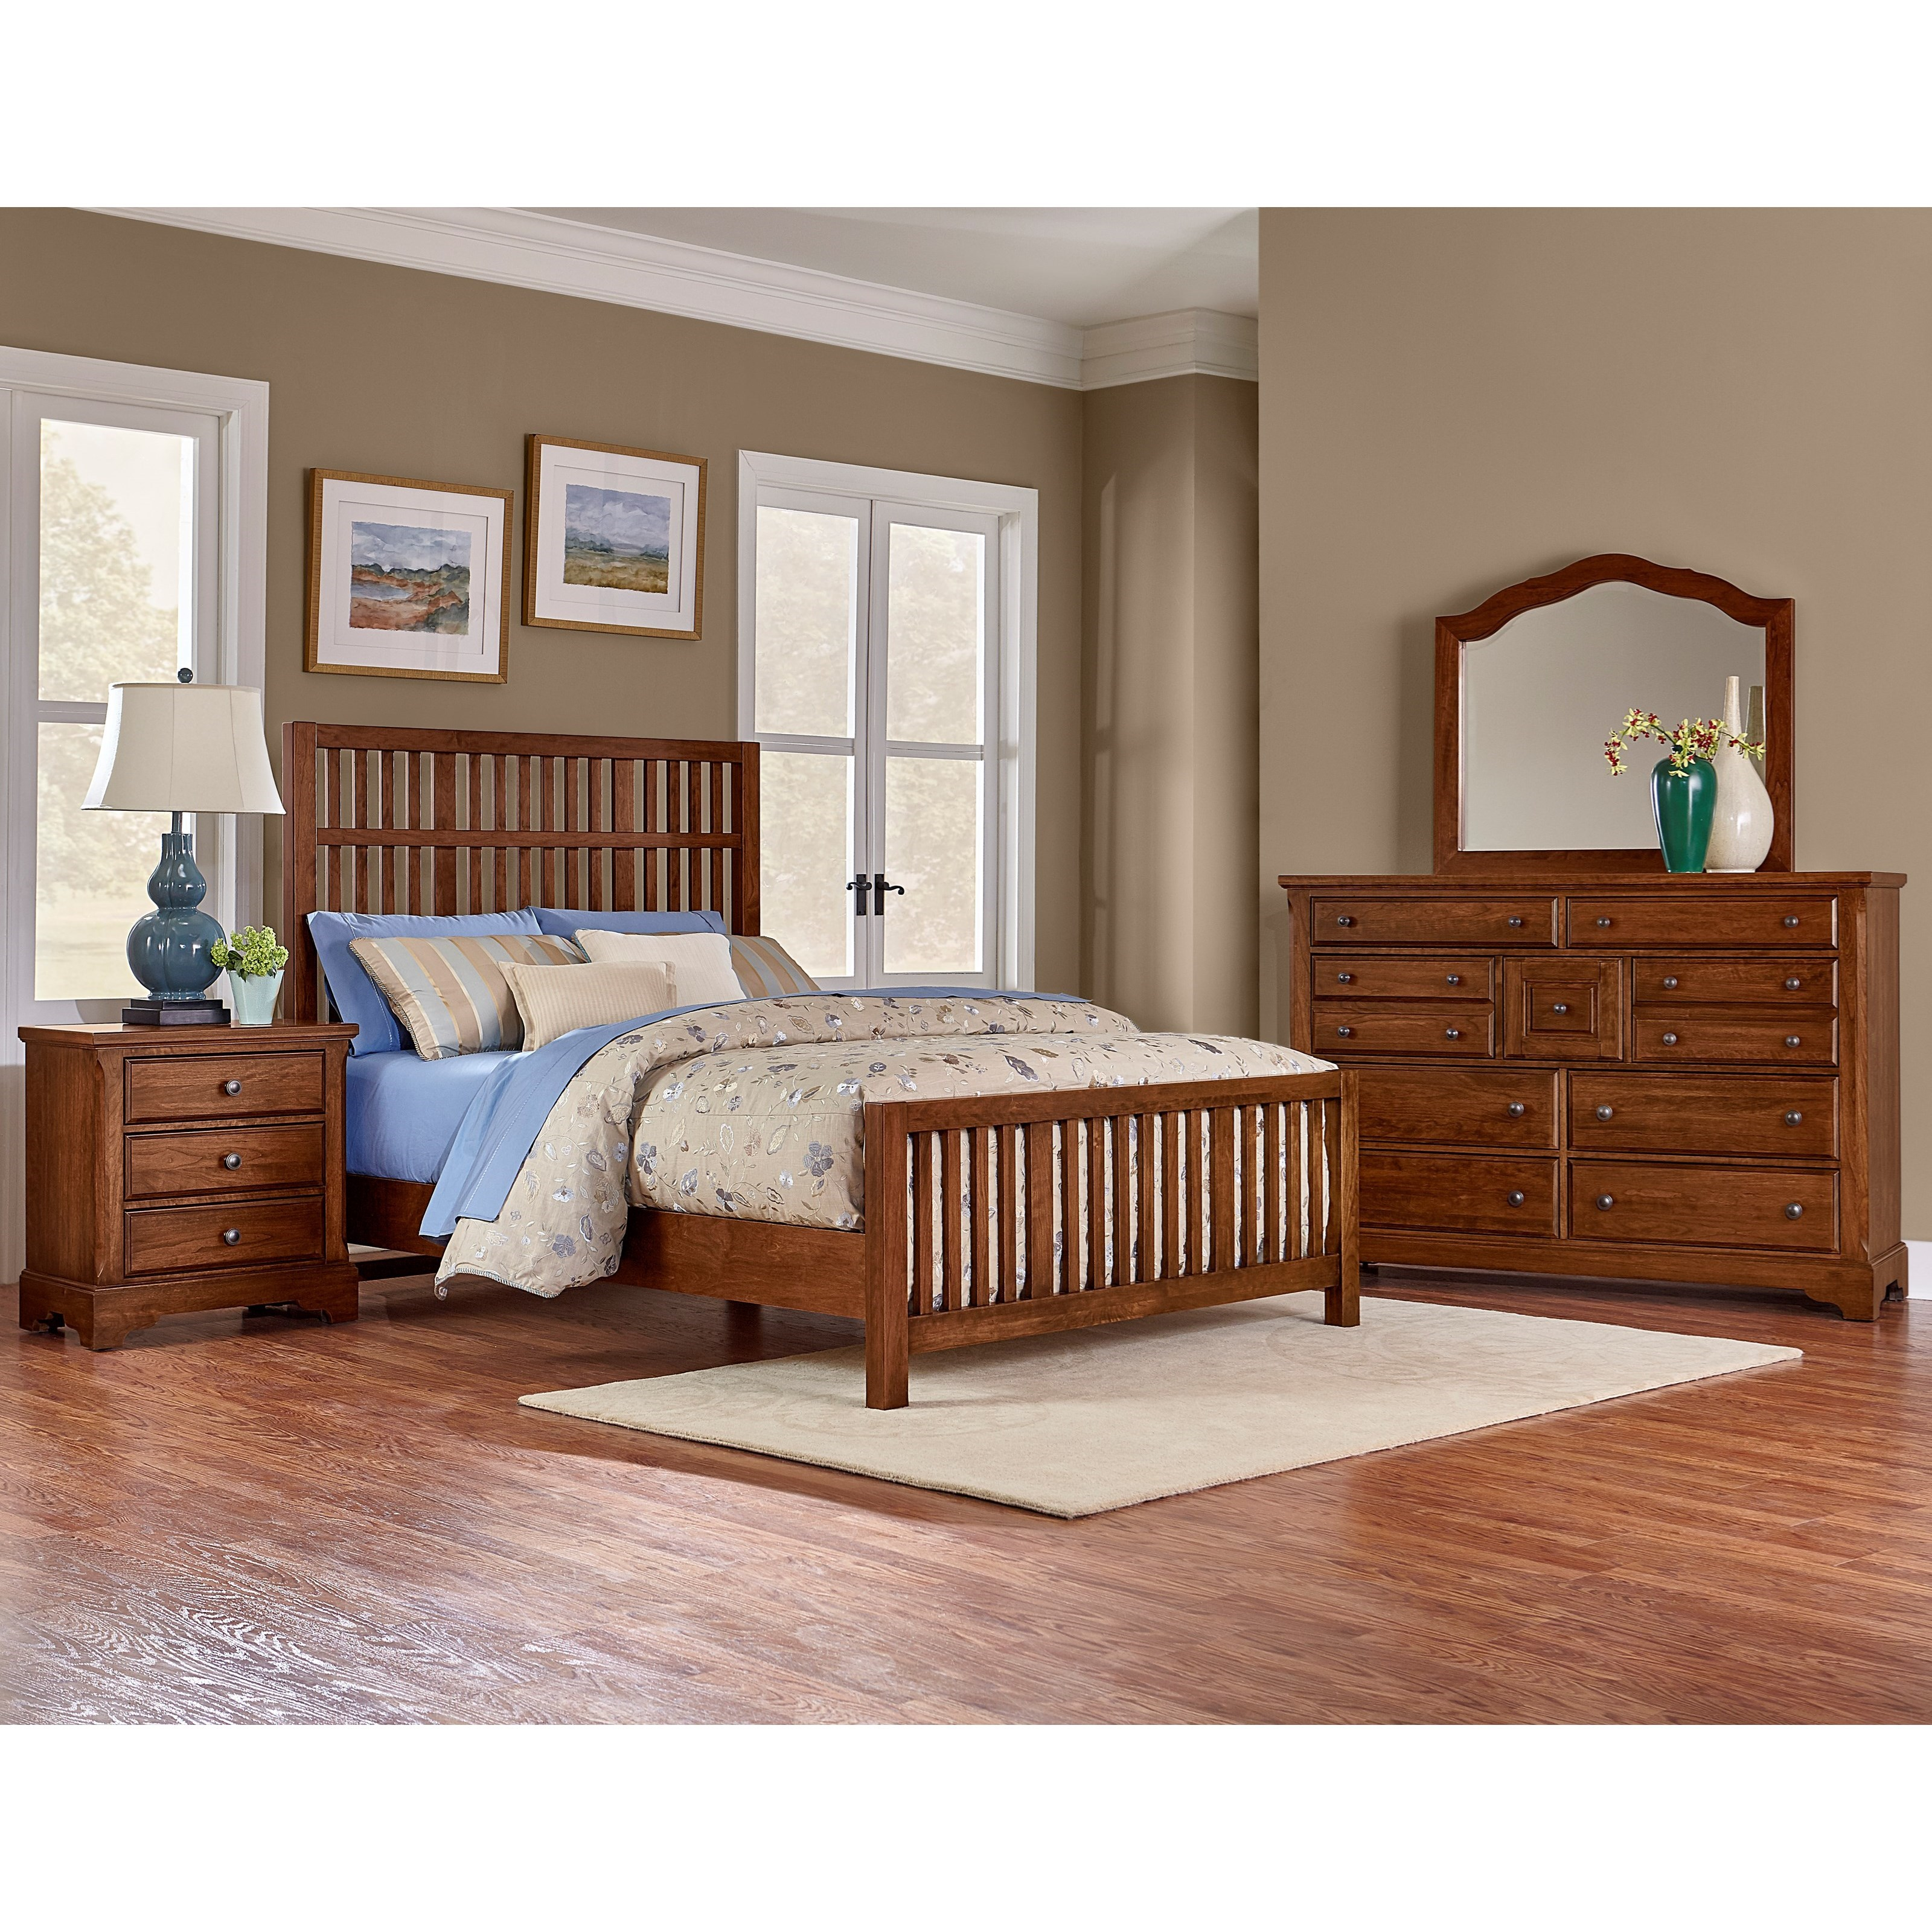 Artisan Choices King Bedroom Group by Artisan & Post at Rooms and Rest